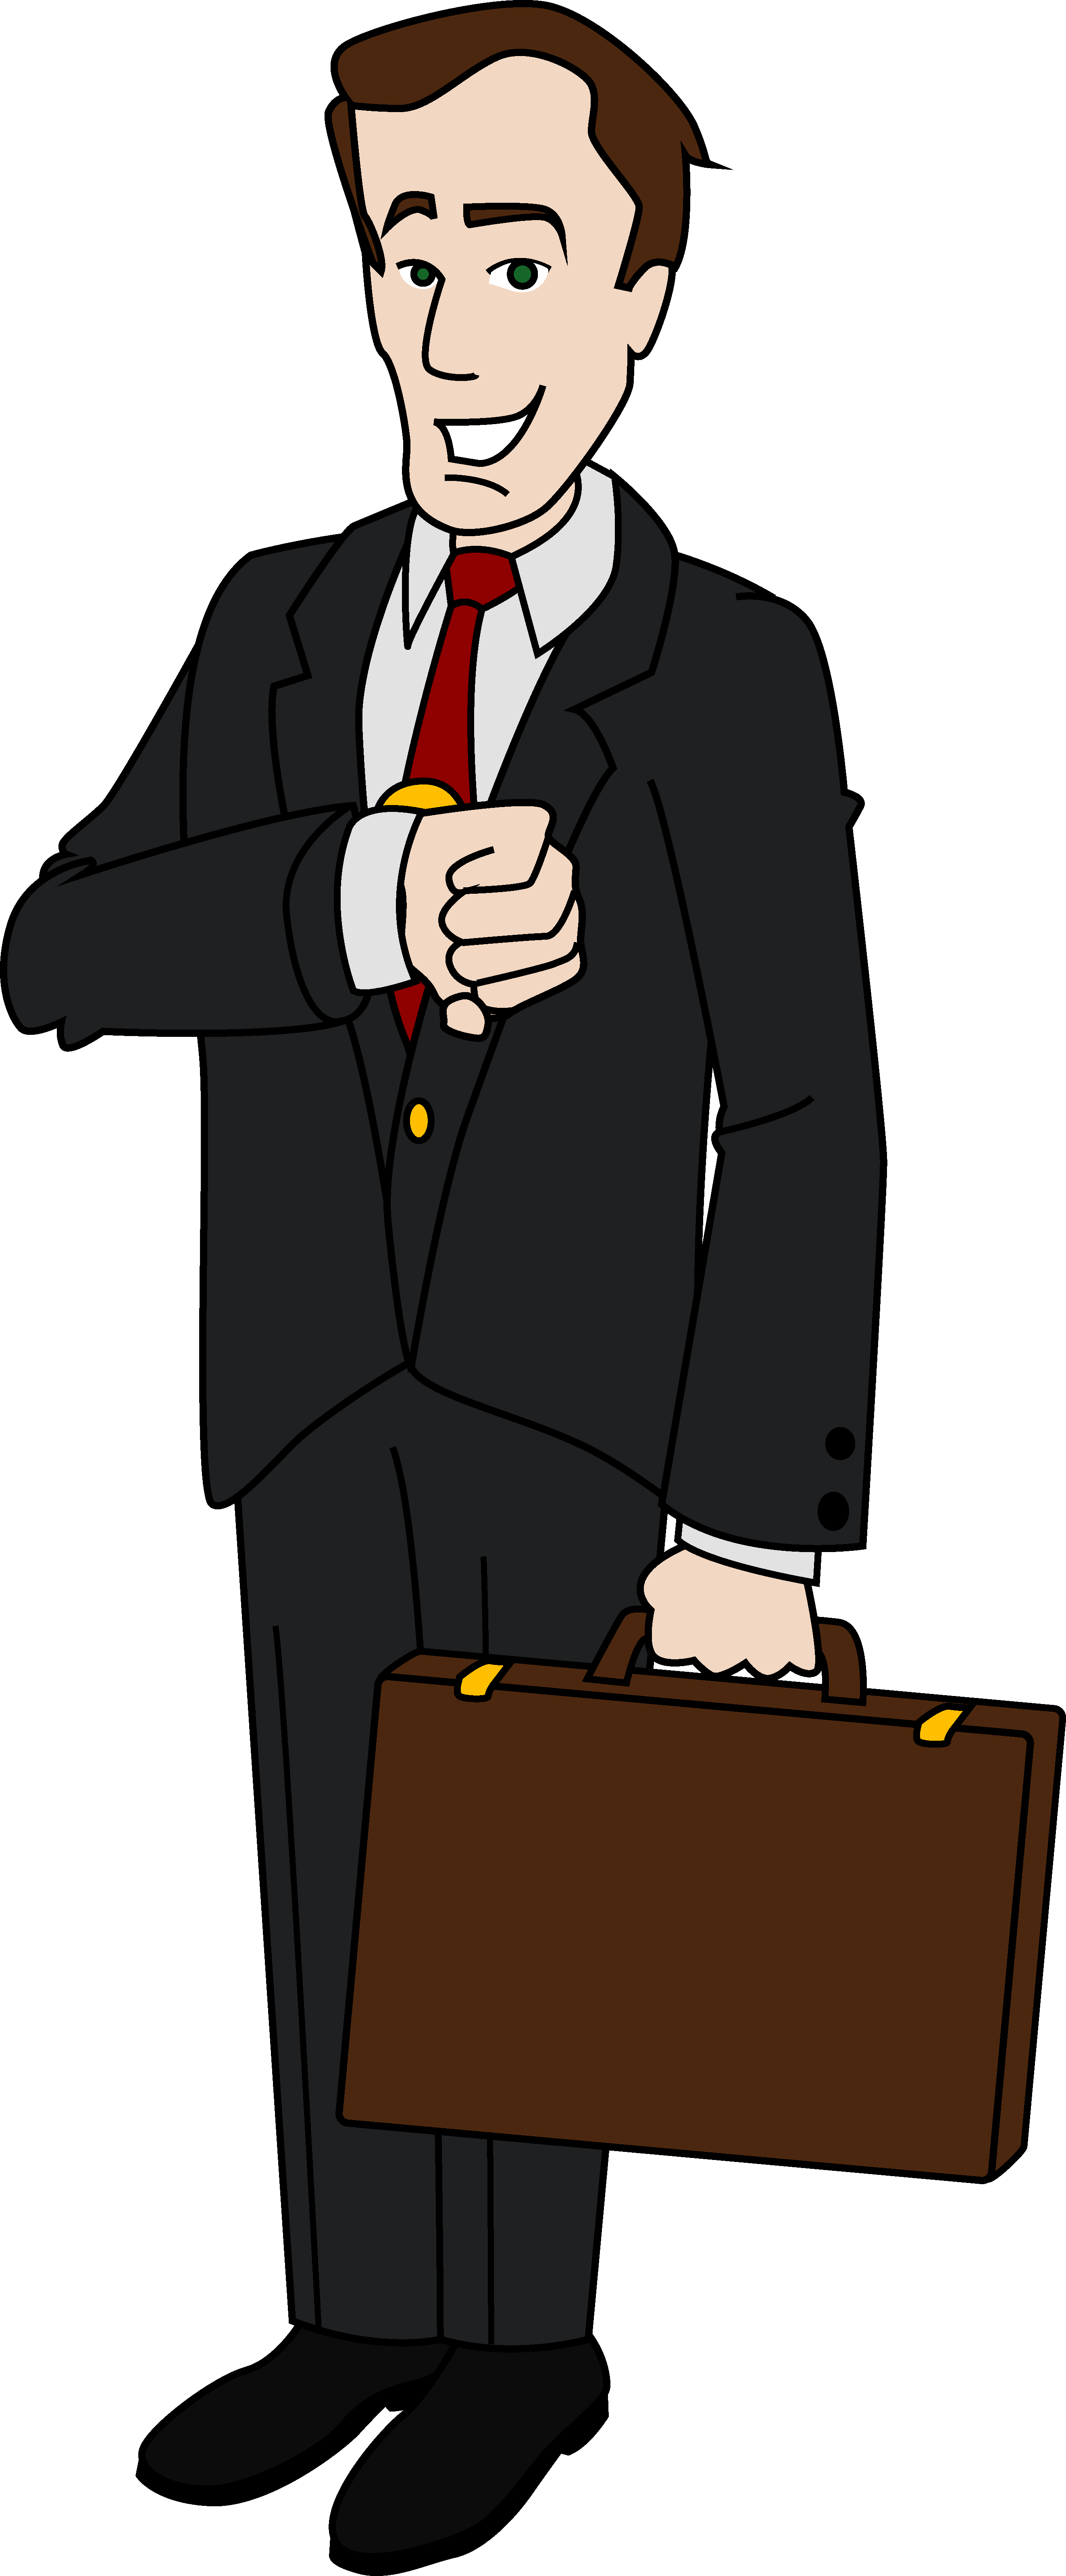 Businessman Clipart Free | Clipart Panda - Free Clipart Images